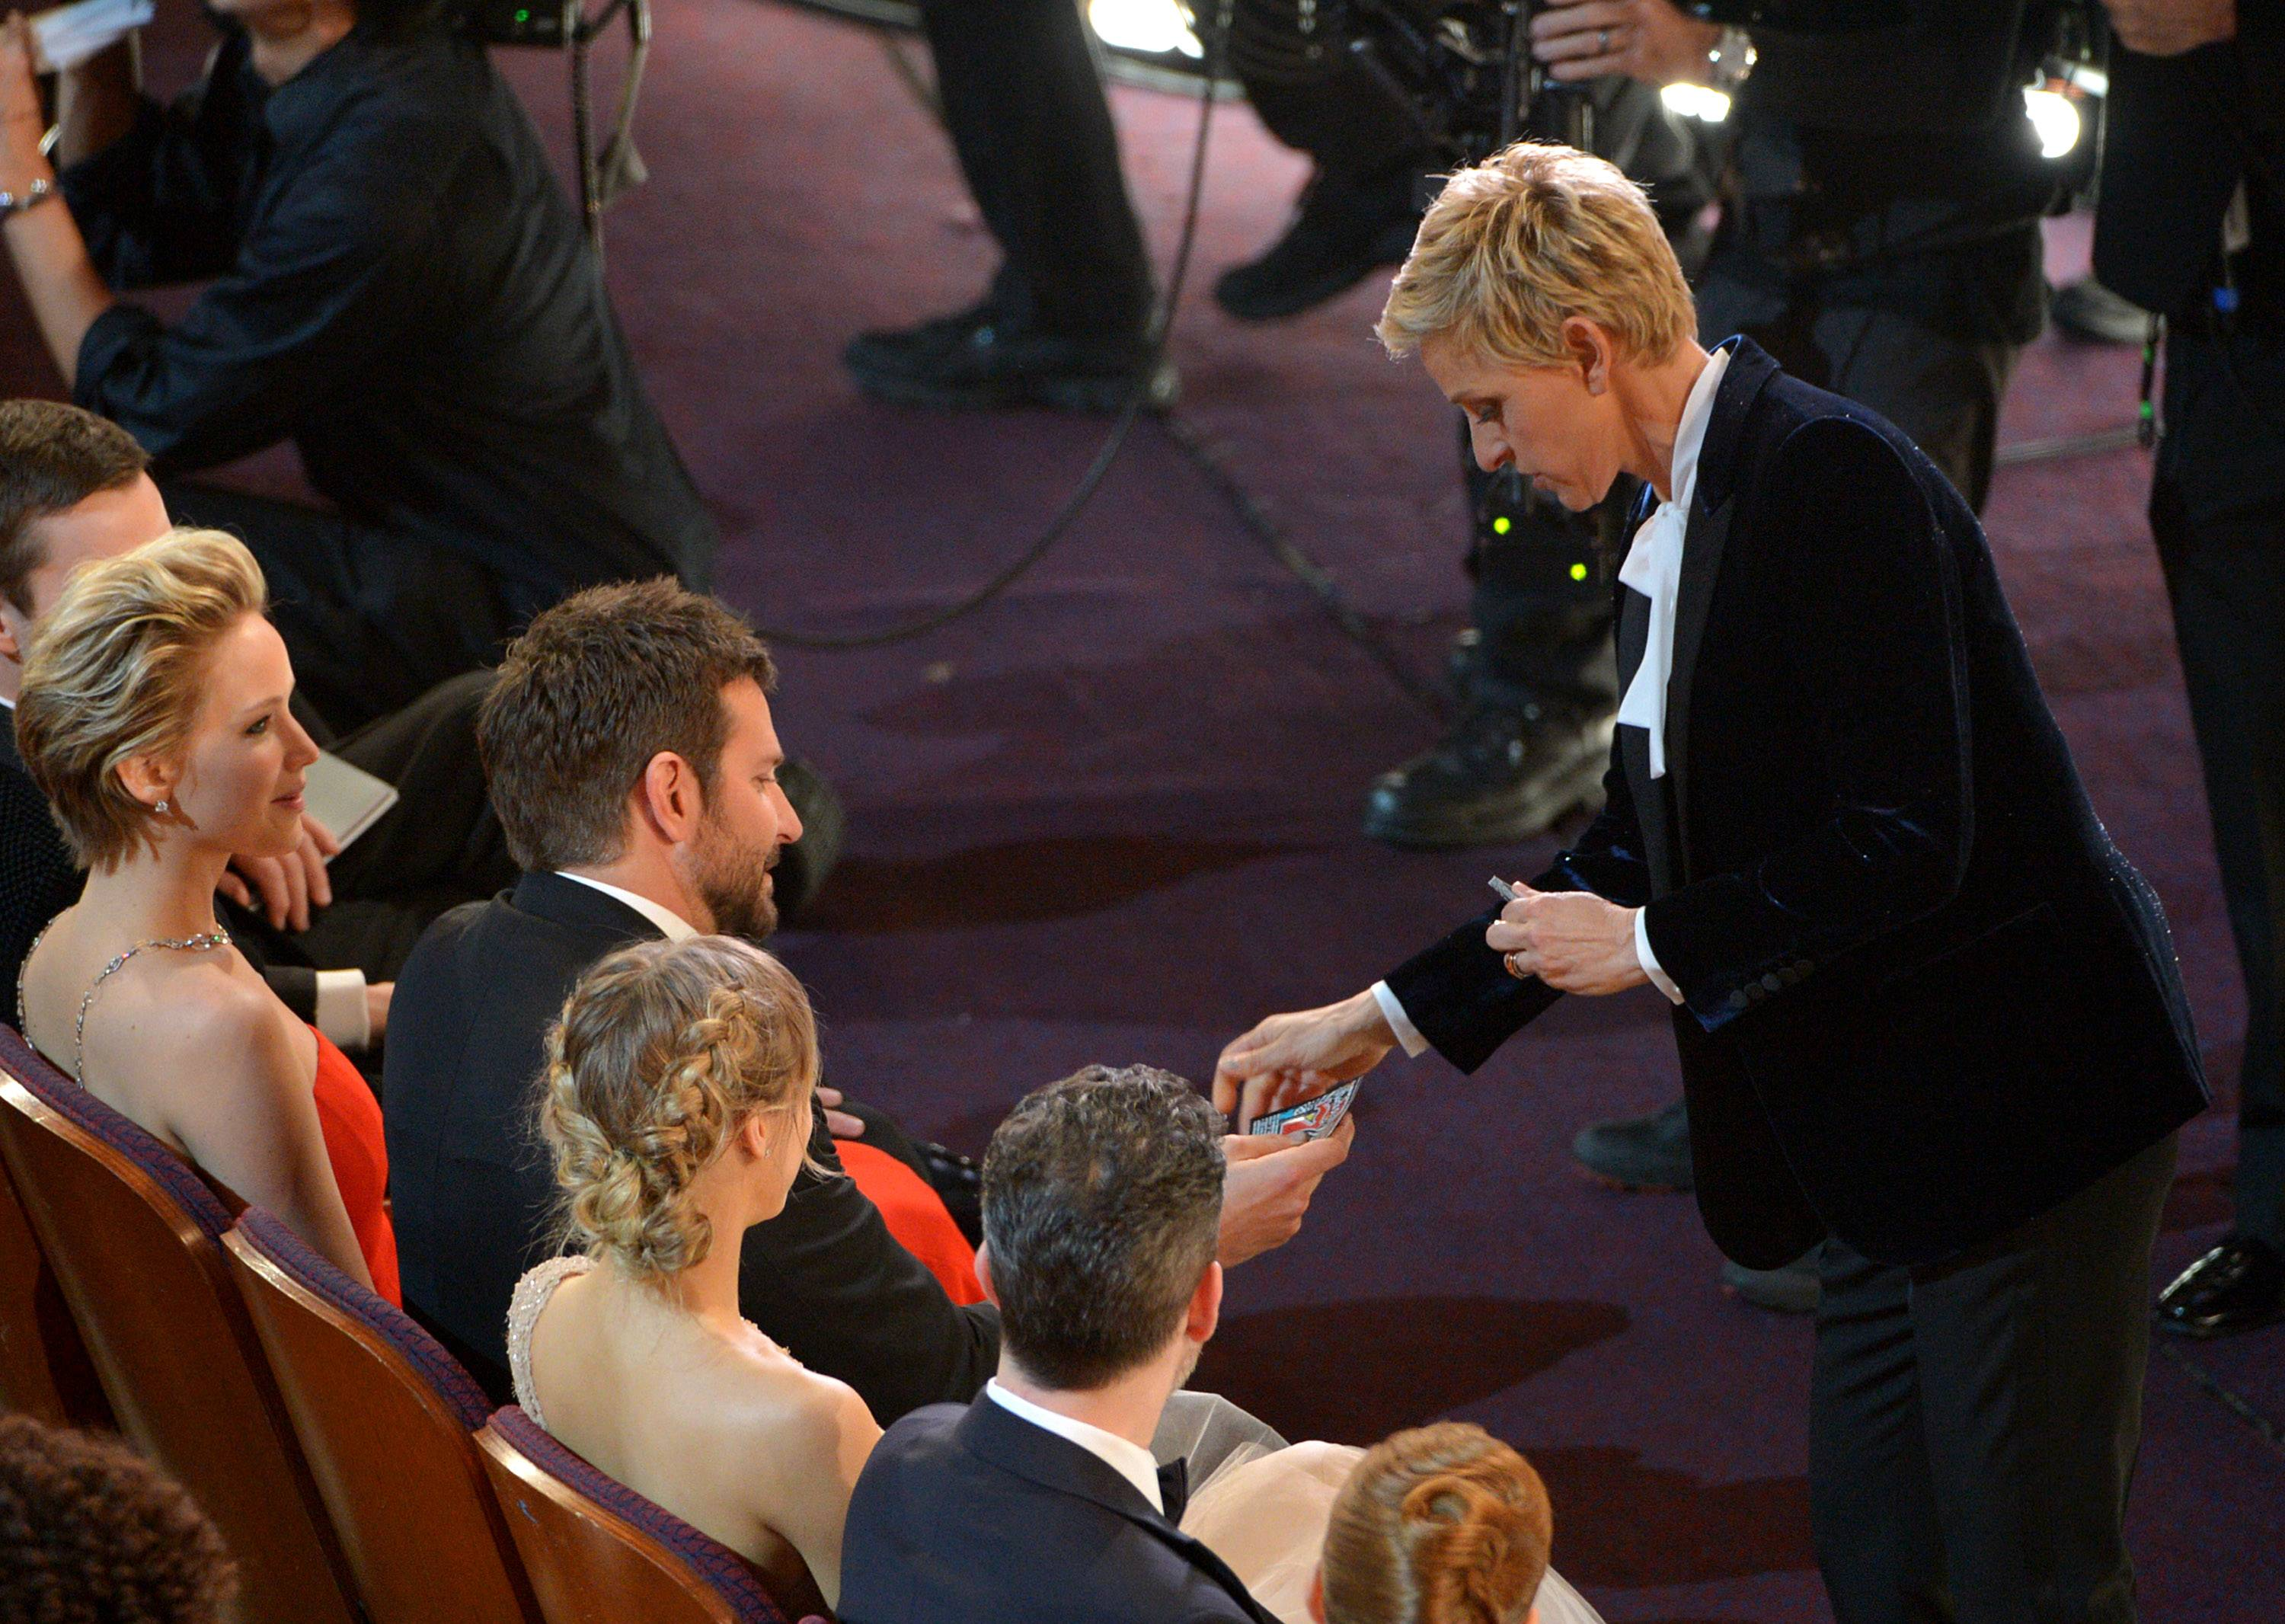 Ellen DeGeneres, right, gives Bradley Cooper a lottery ticket during the Oscars.